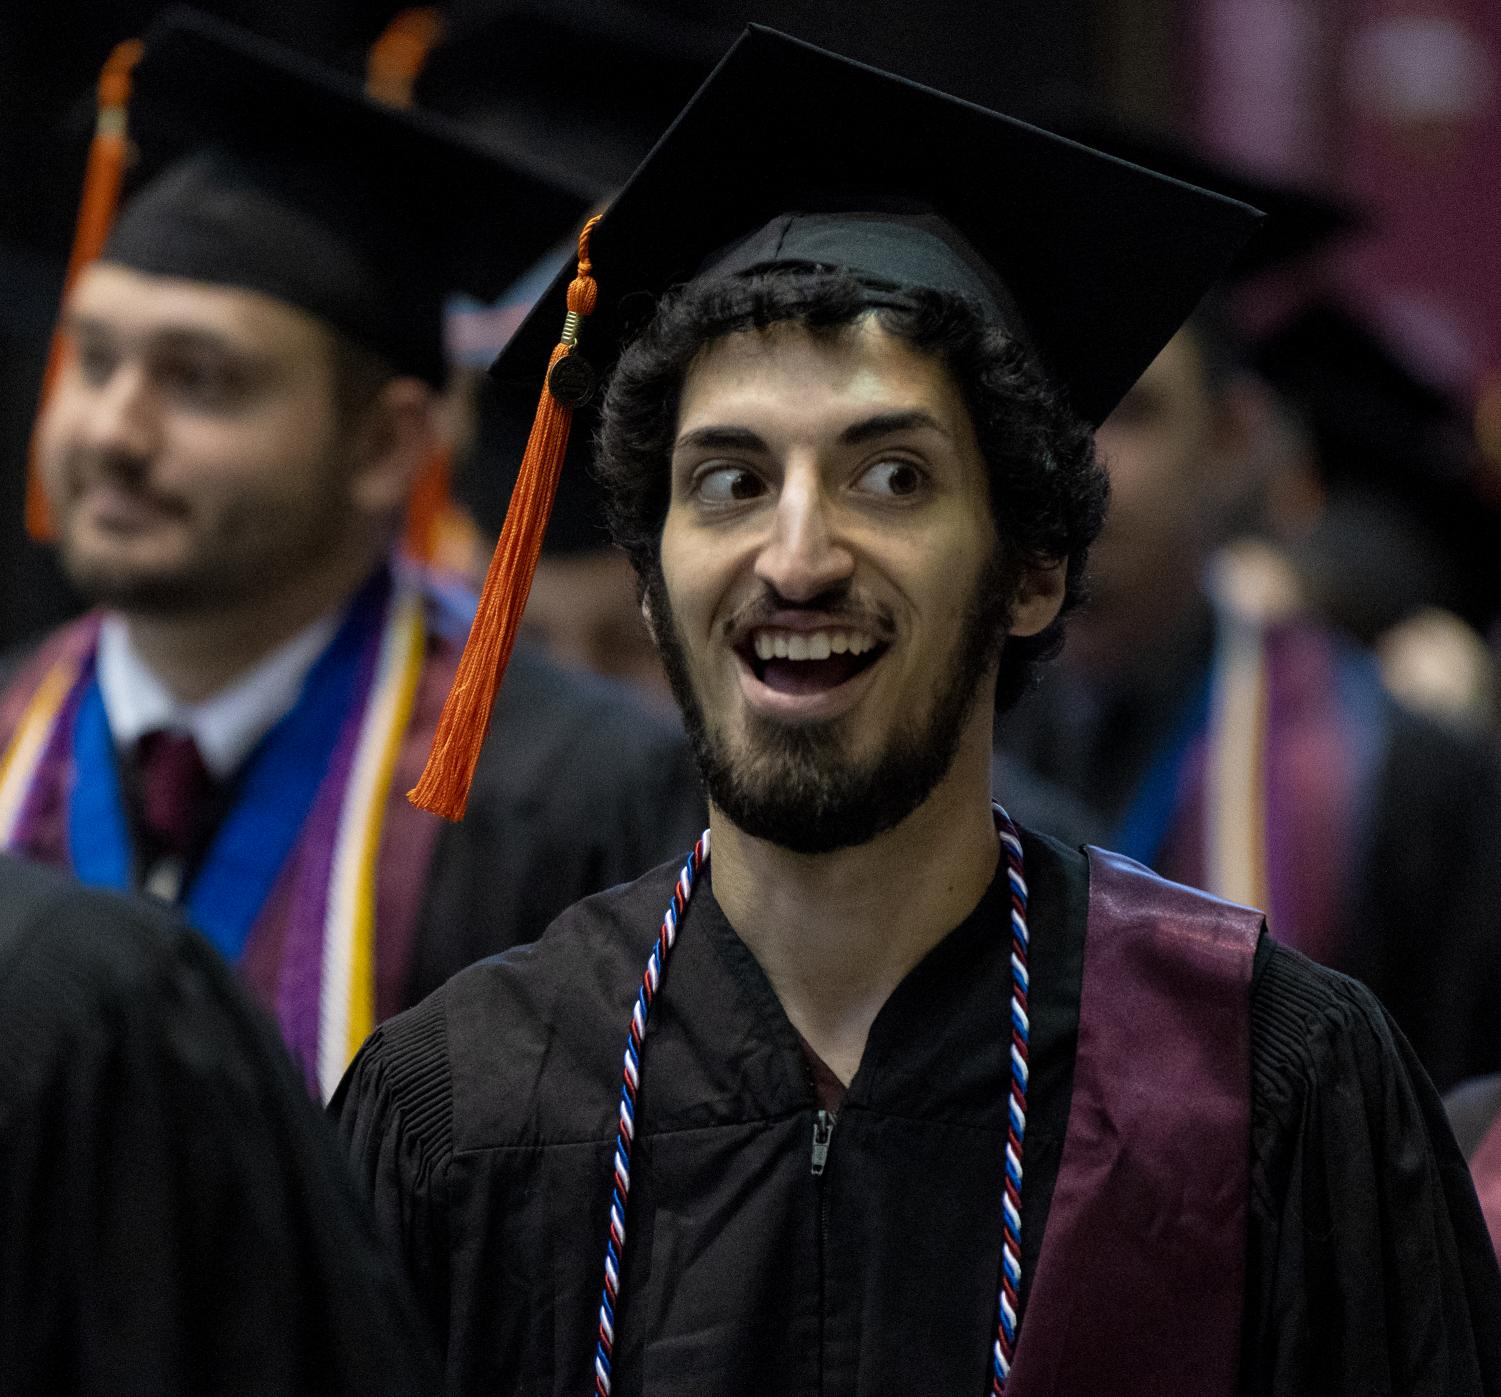 Jordan+Robin+reacts+while+walking+into+the+Arena+on+Saturday%2C+May+11%2C+2019+during+the+2019+commencement+inside+the+SIU+Arena.+Robin+graduated+with+a+degree+in+Aviation+Technologies.+